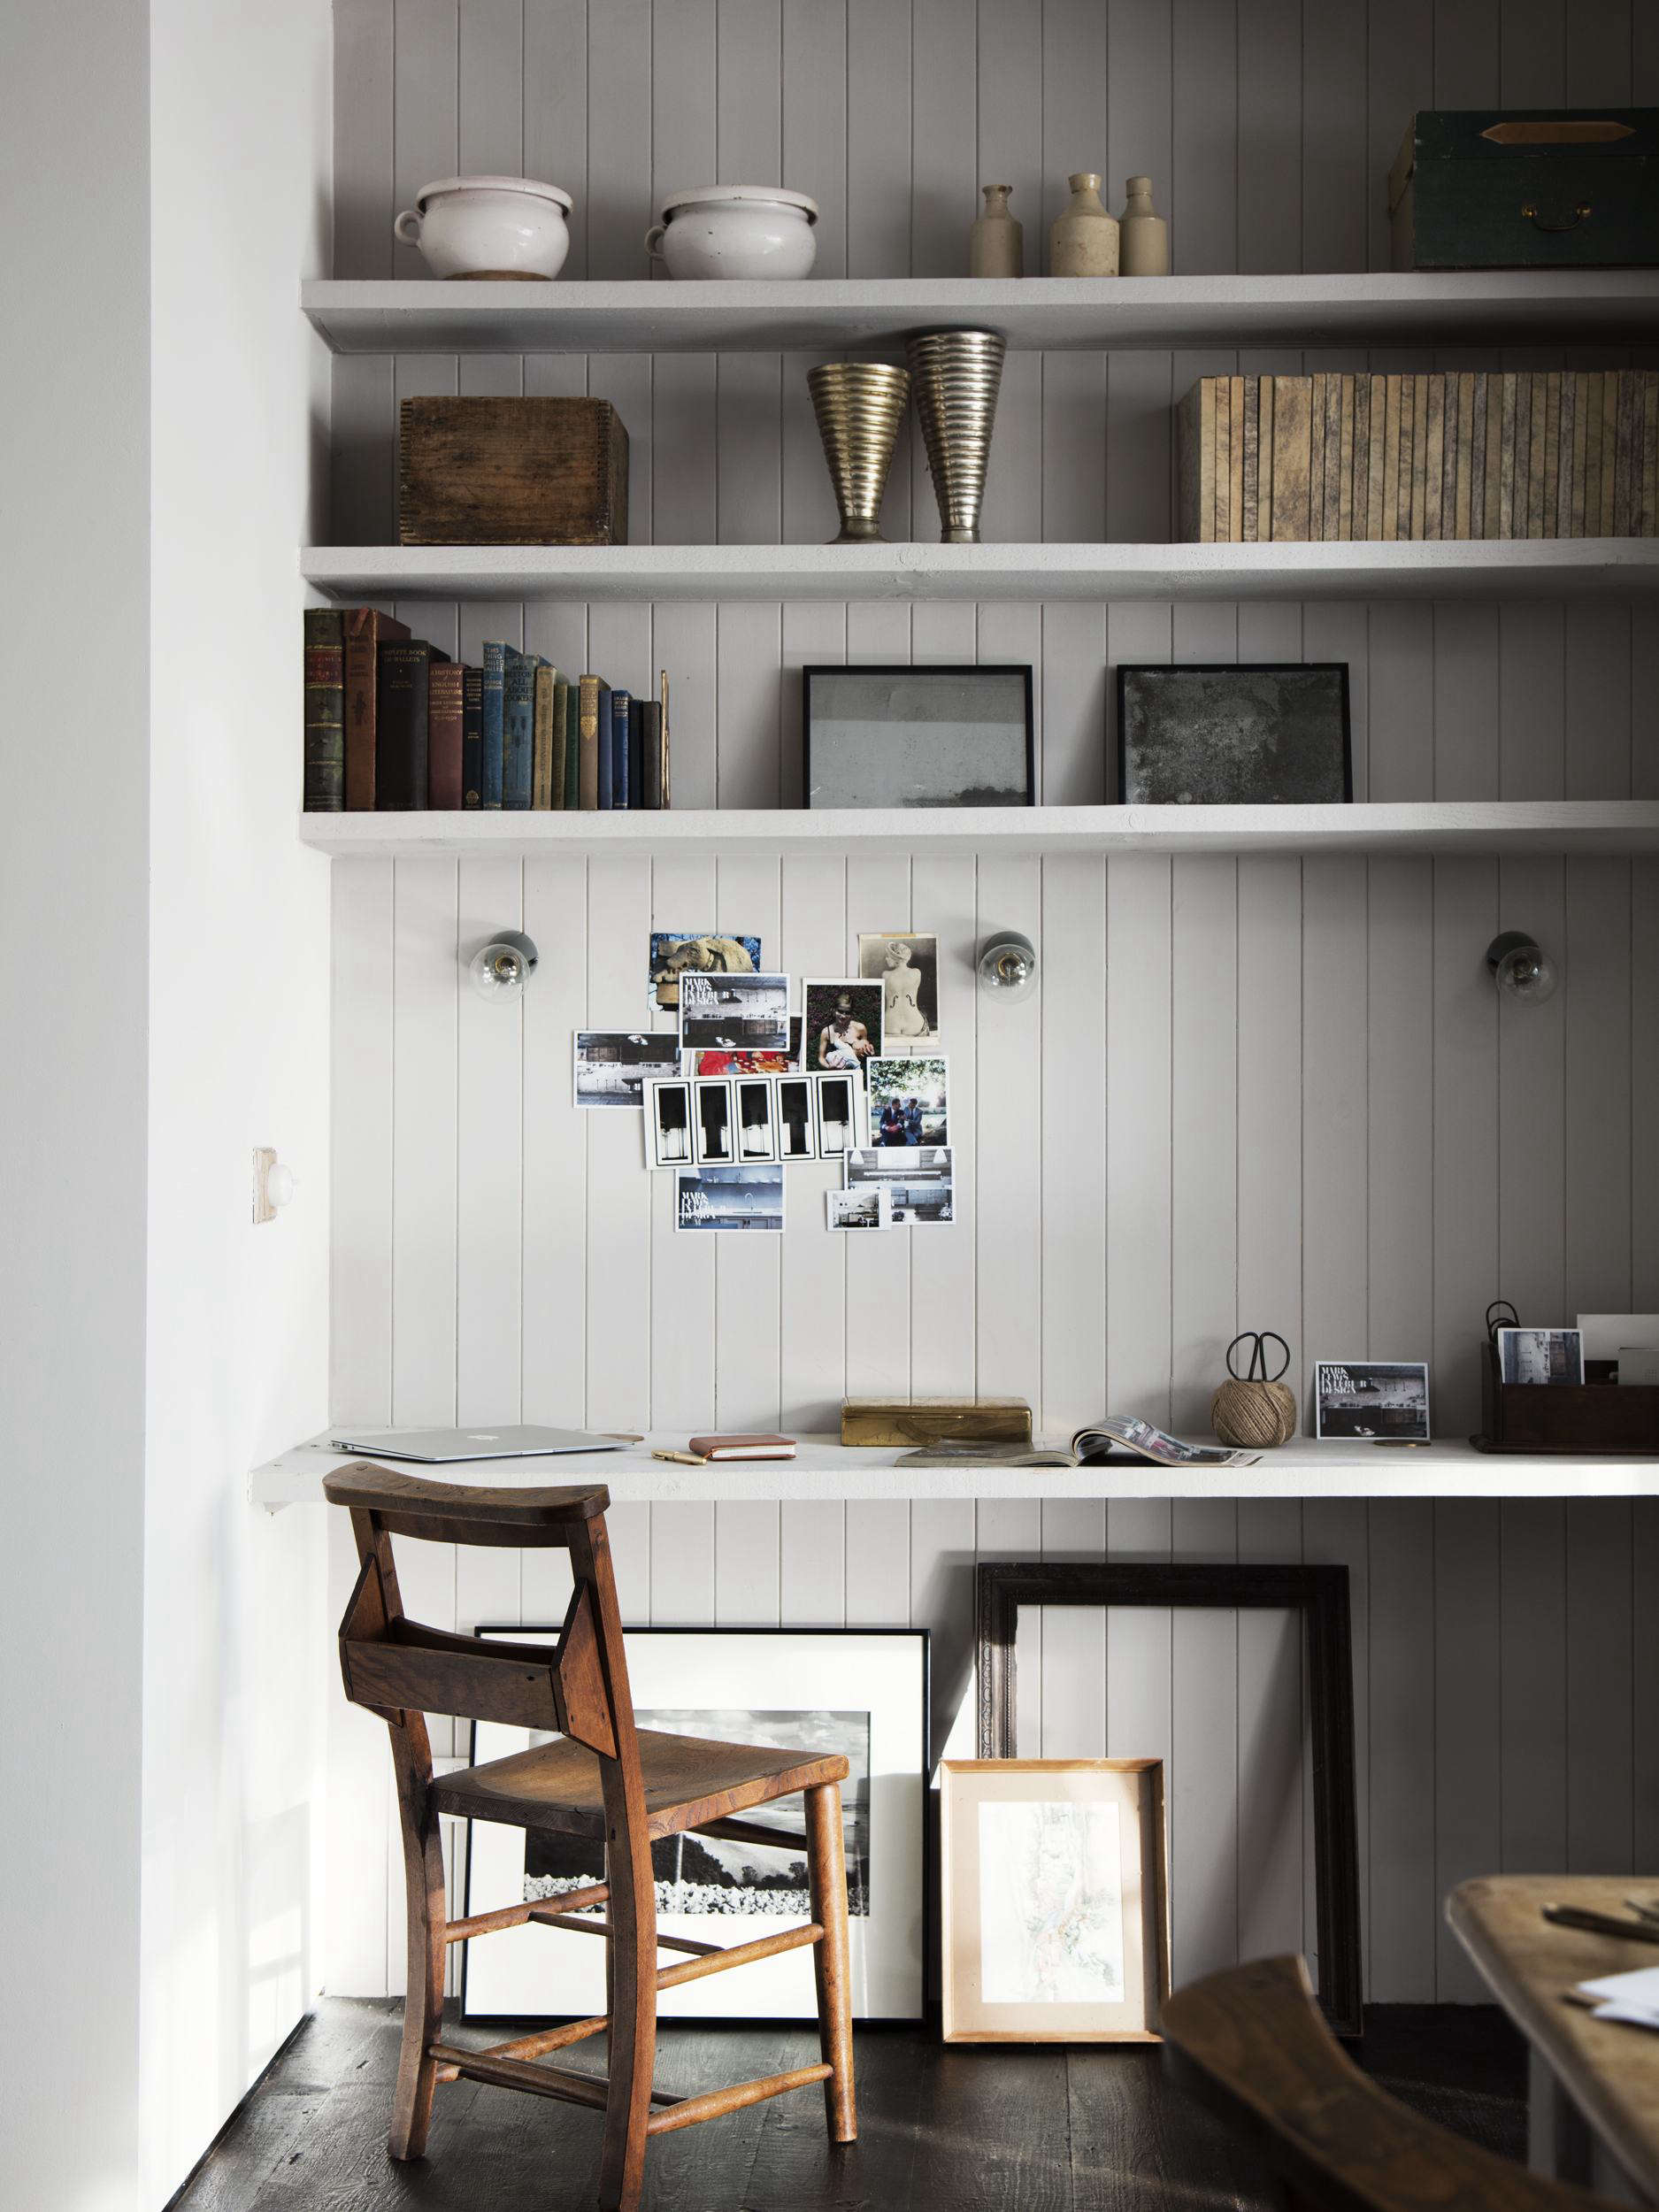 Built-in desk in London kitchen alcove designed by Mark Lewis. Rory Gardiner photo.